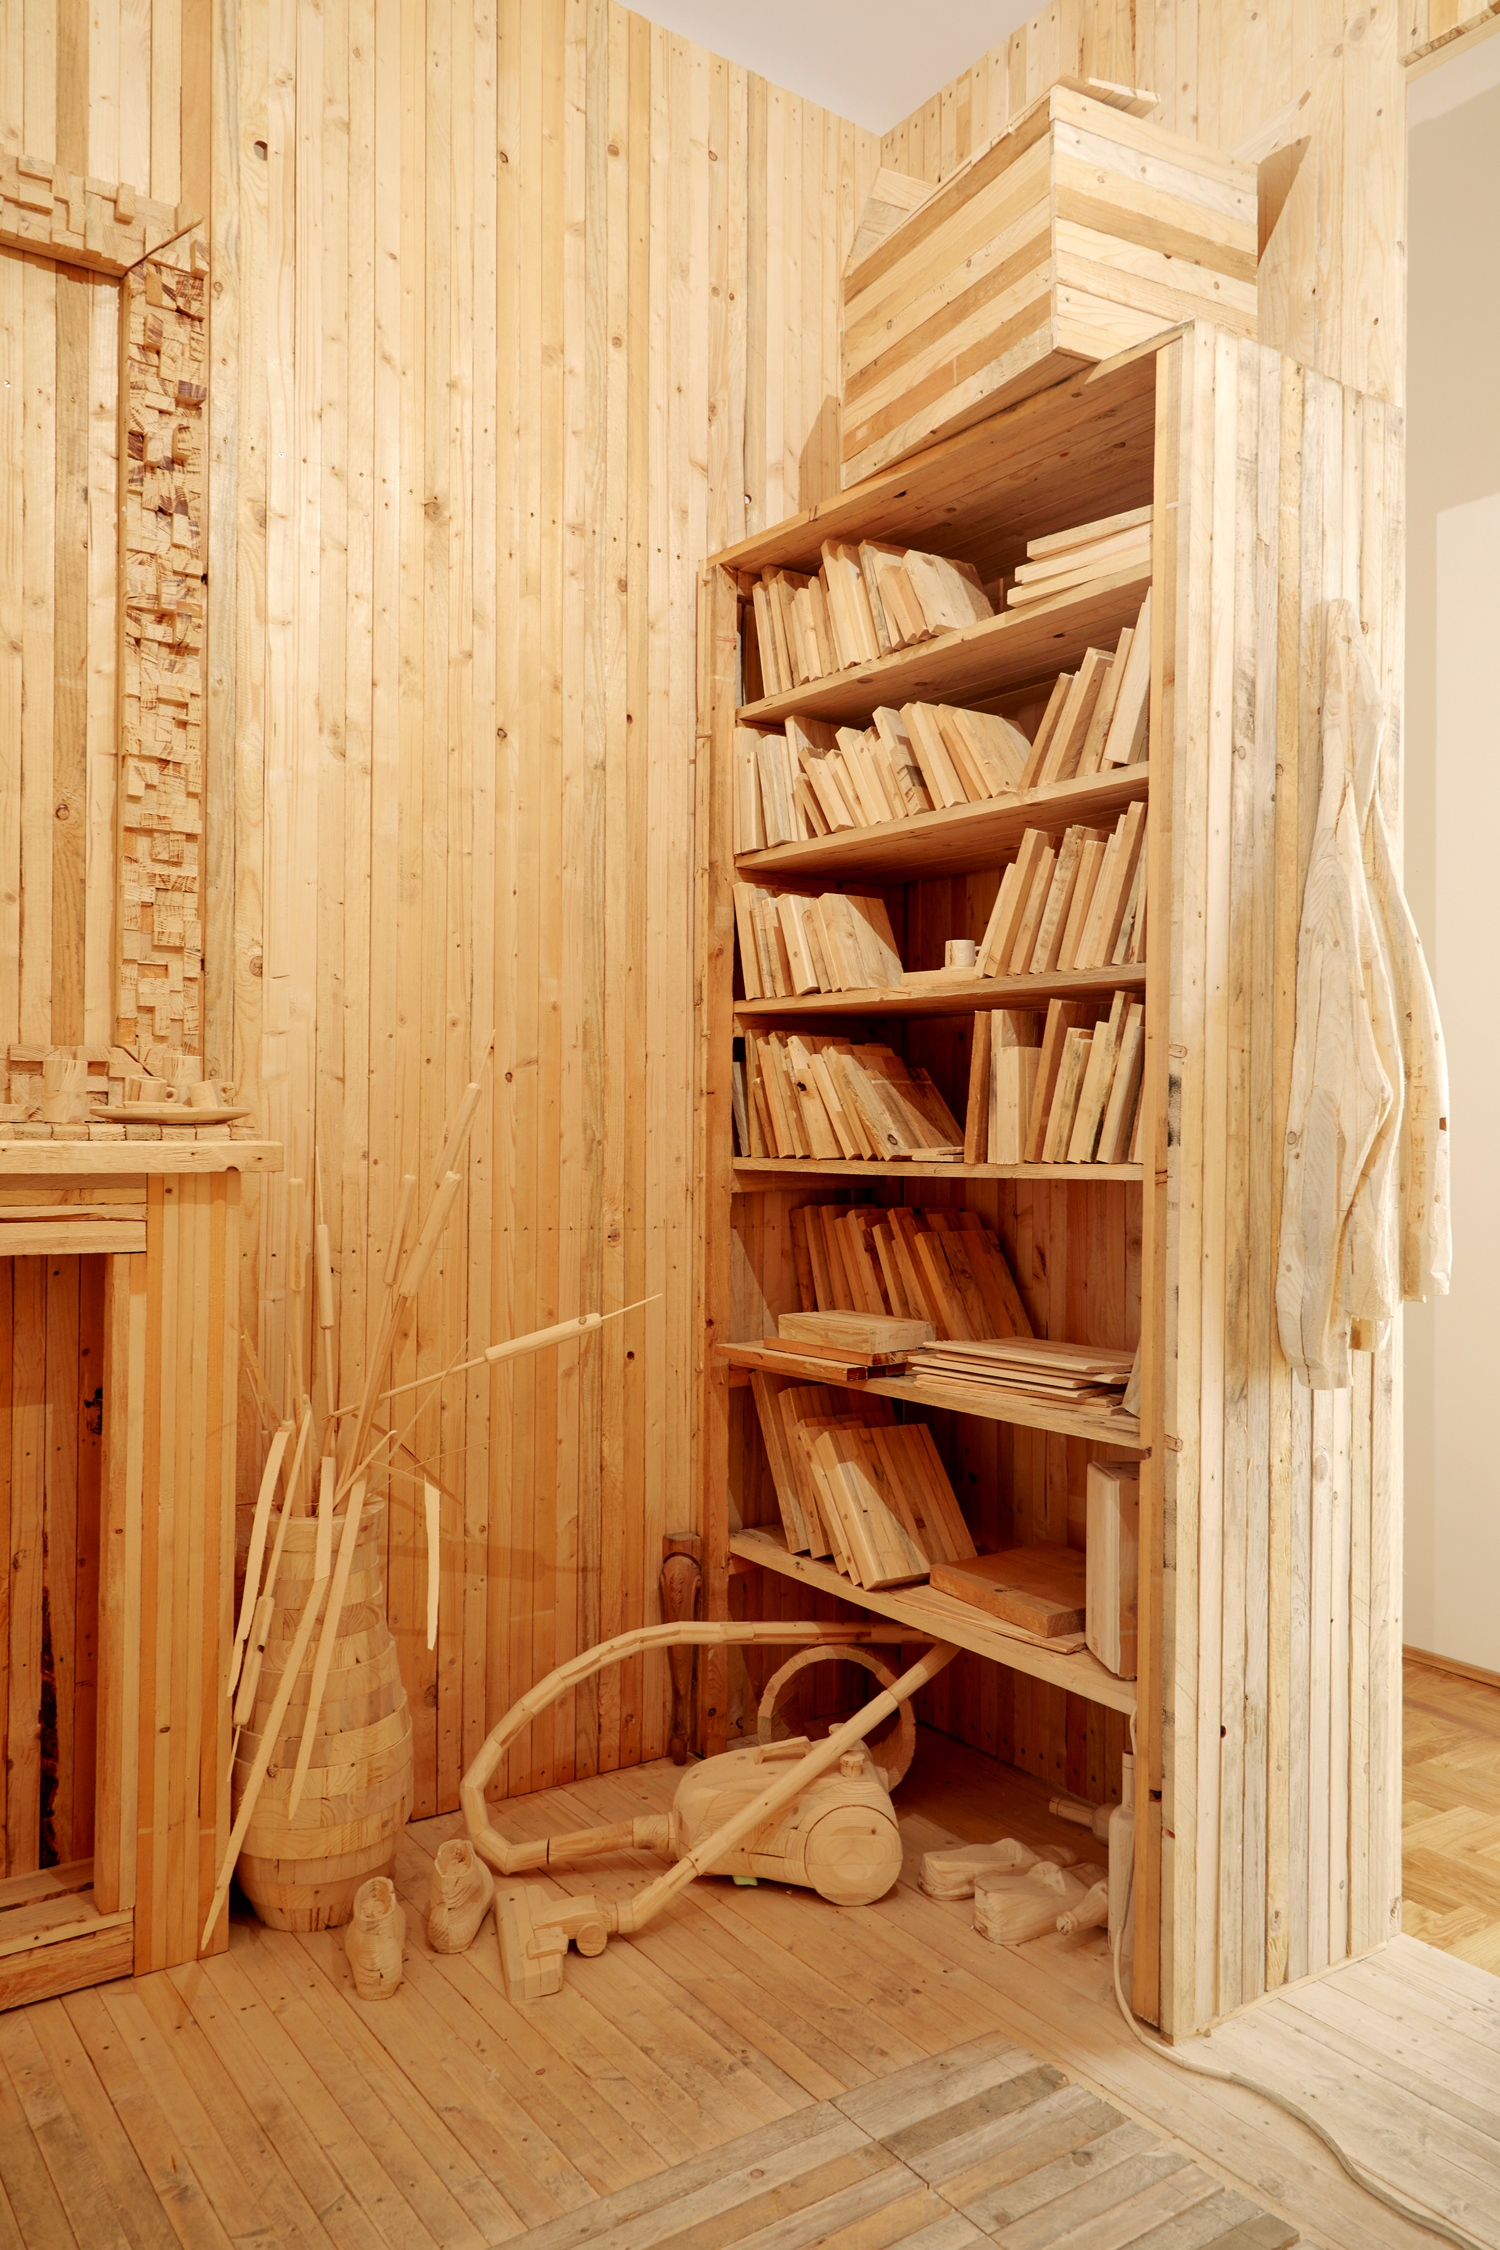 Desert 2017, installation, two rooms made out of wood,  350 x 445 x 950 cm (details)